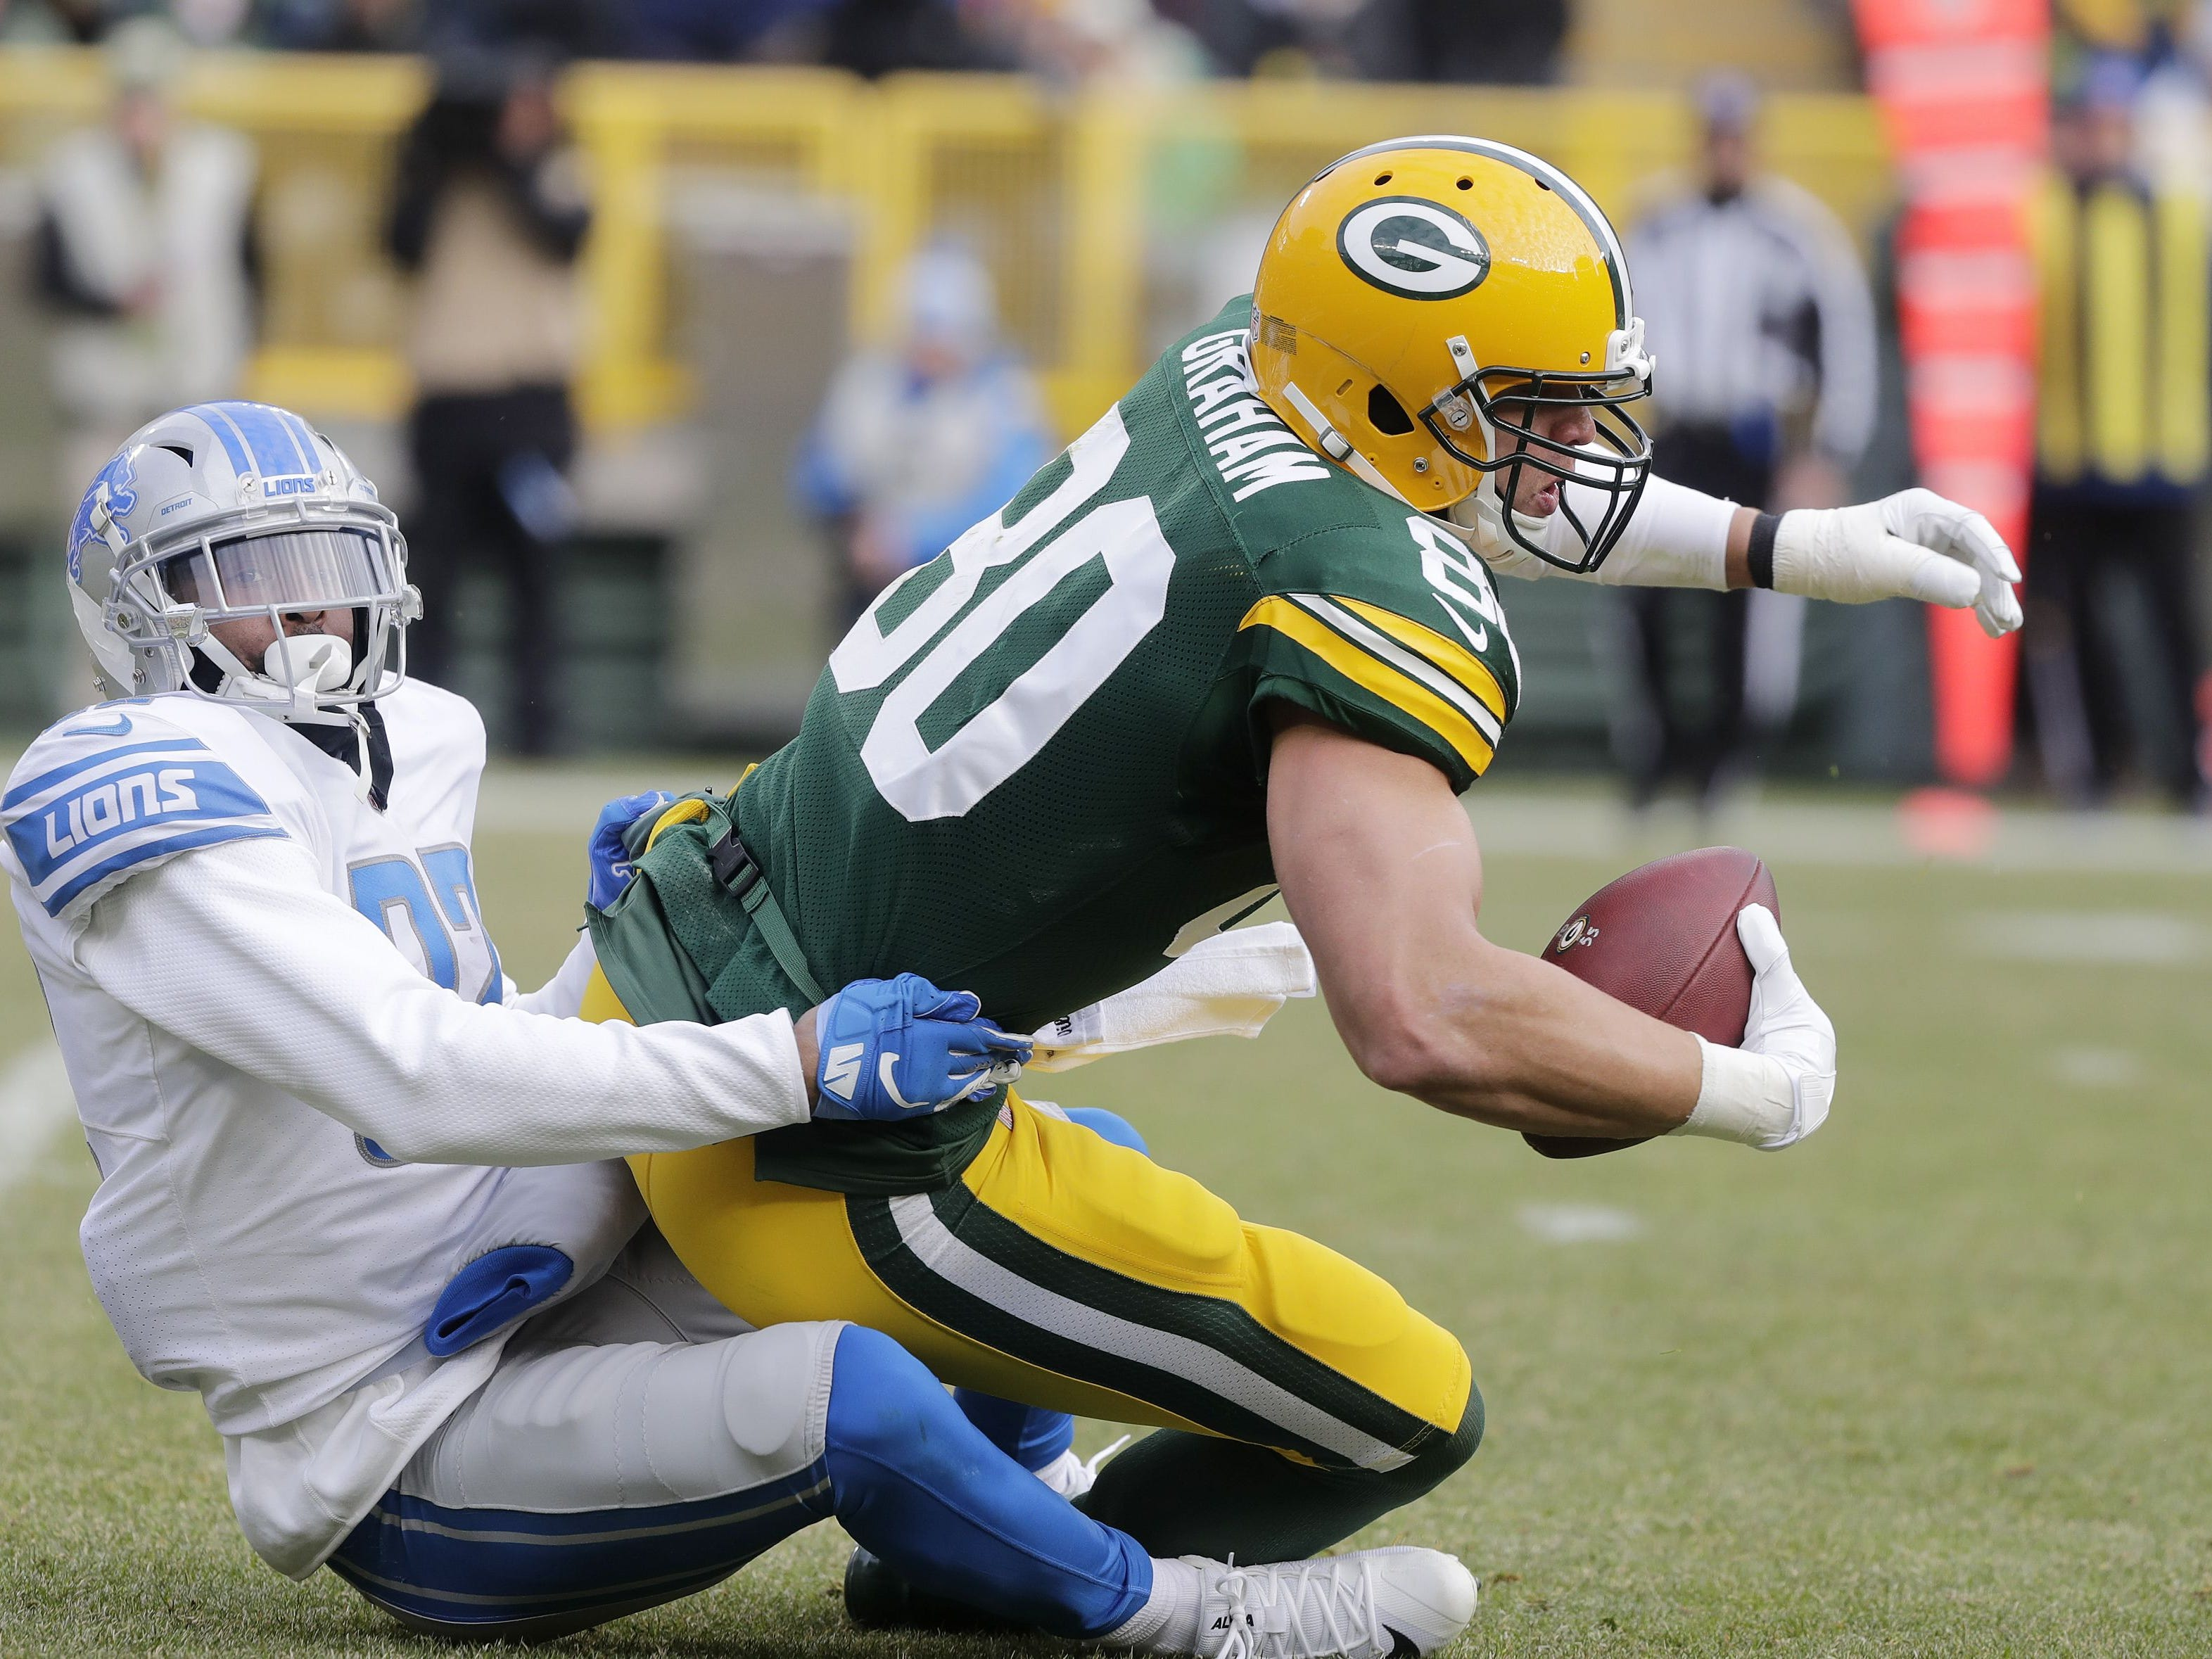 Week 6: Lions at Packers, 7:15 p.m. CT Monday, Oct. 14, Lambeau Field (ESPN)